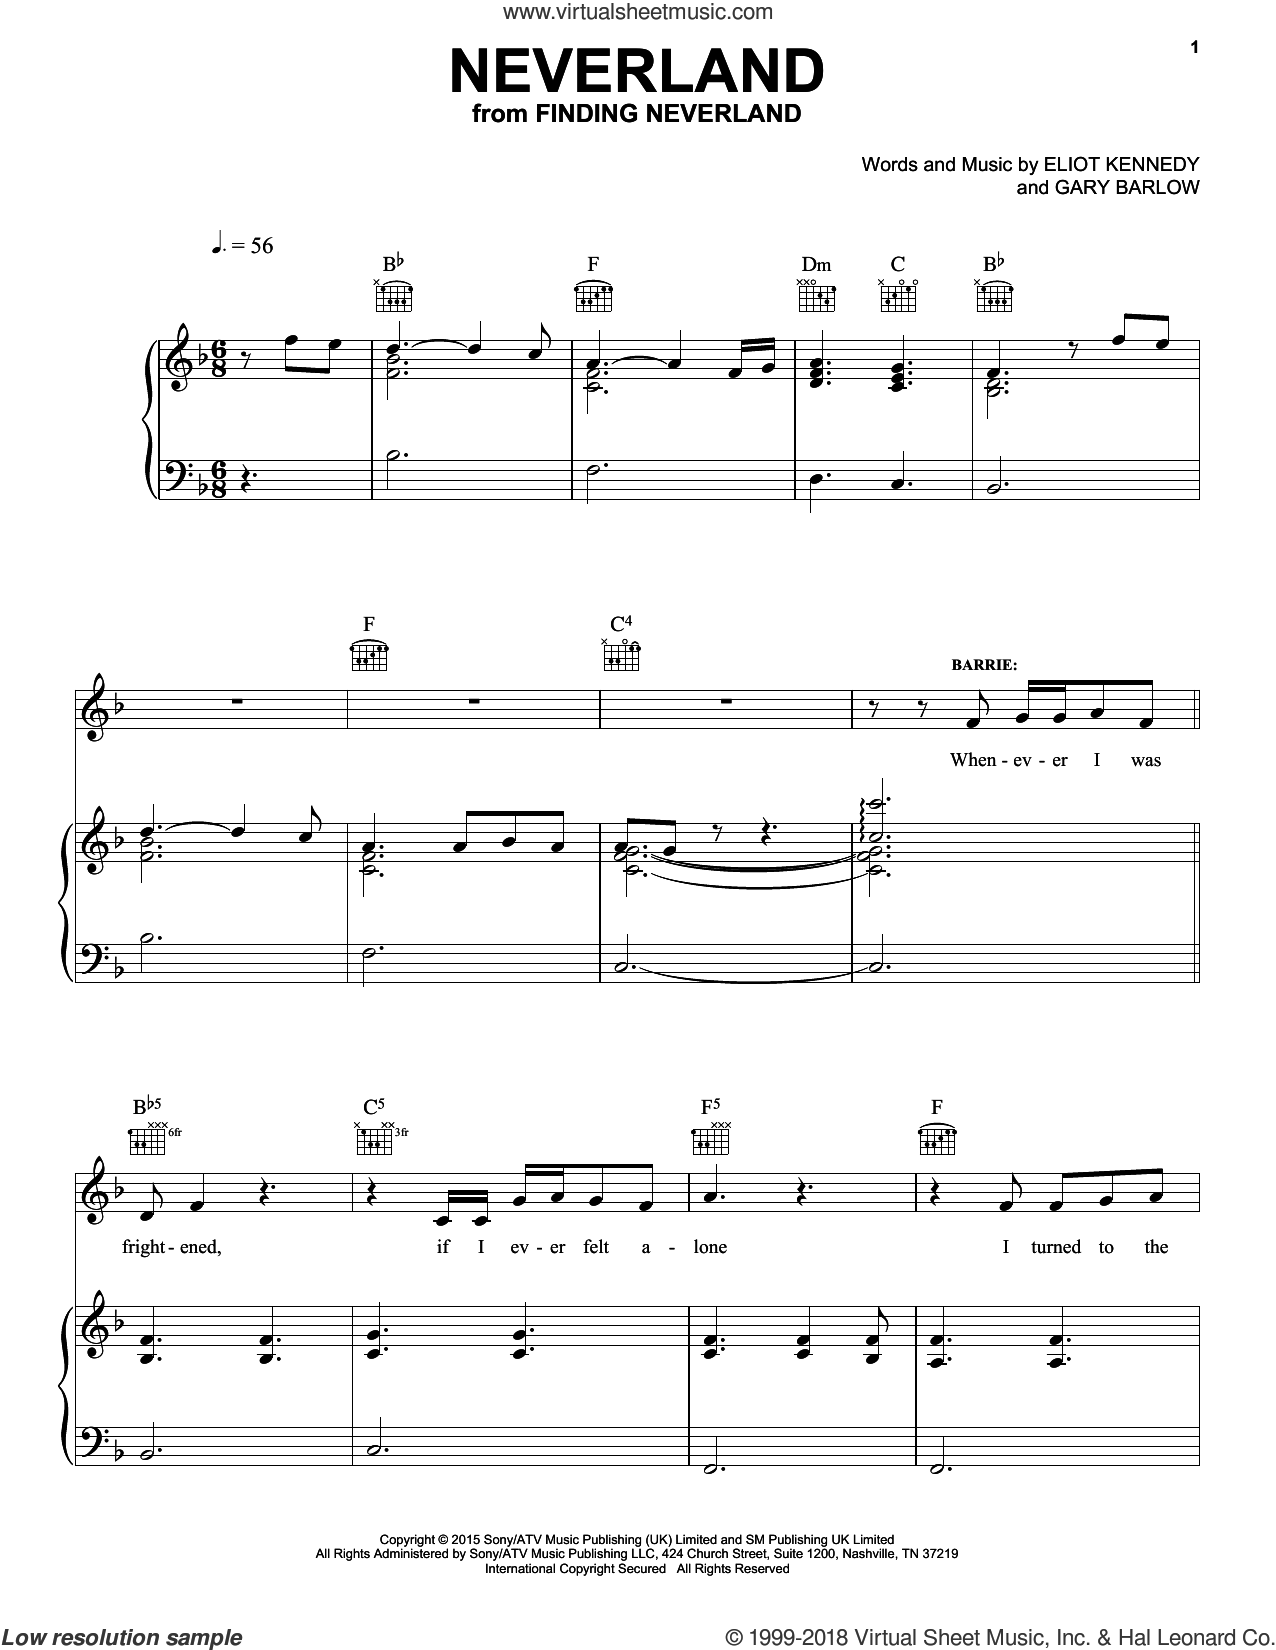 Neverland sheet music for voice, piano or guitar by Gary Barlow & Eliot Kennedy, Eliot Kennedy and Gary Barlow, intermediate skill level